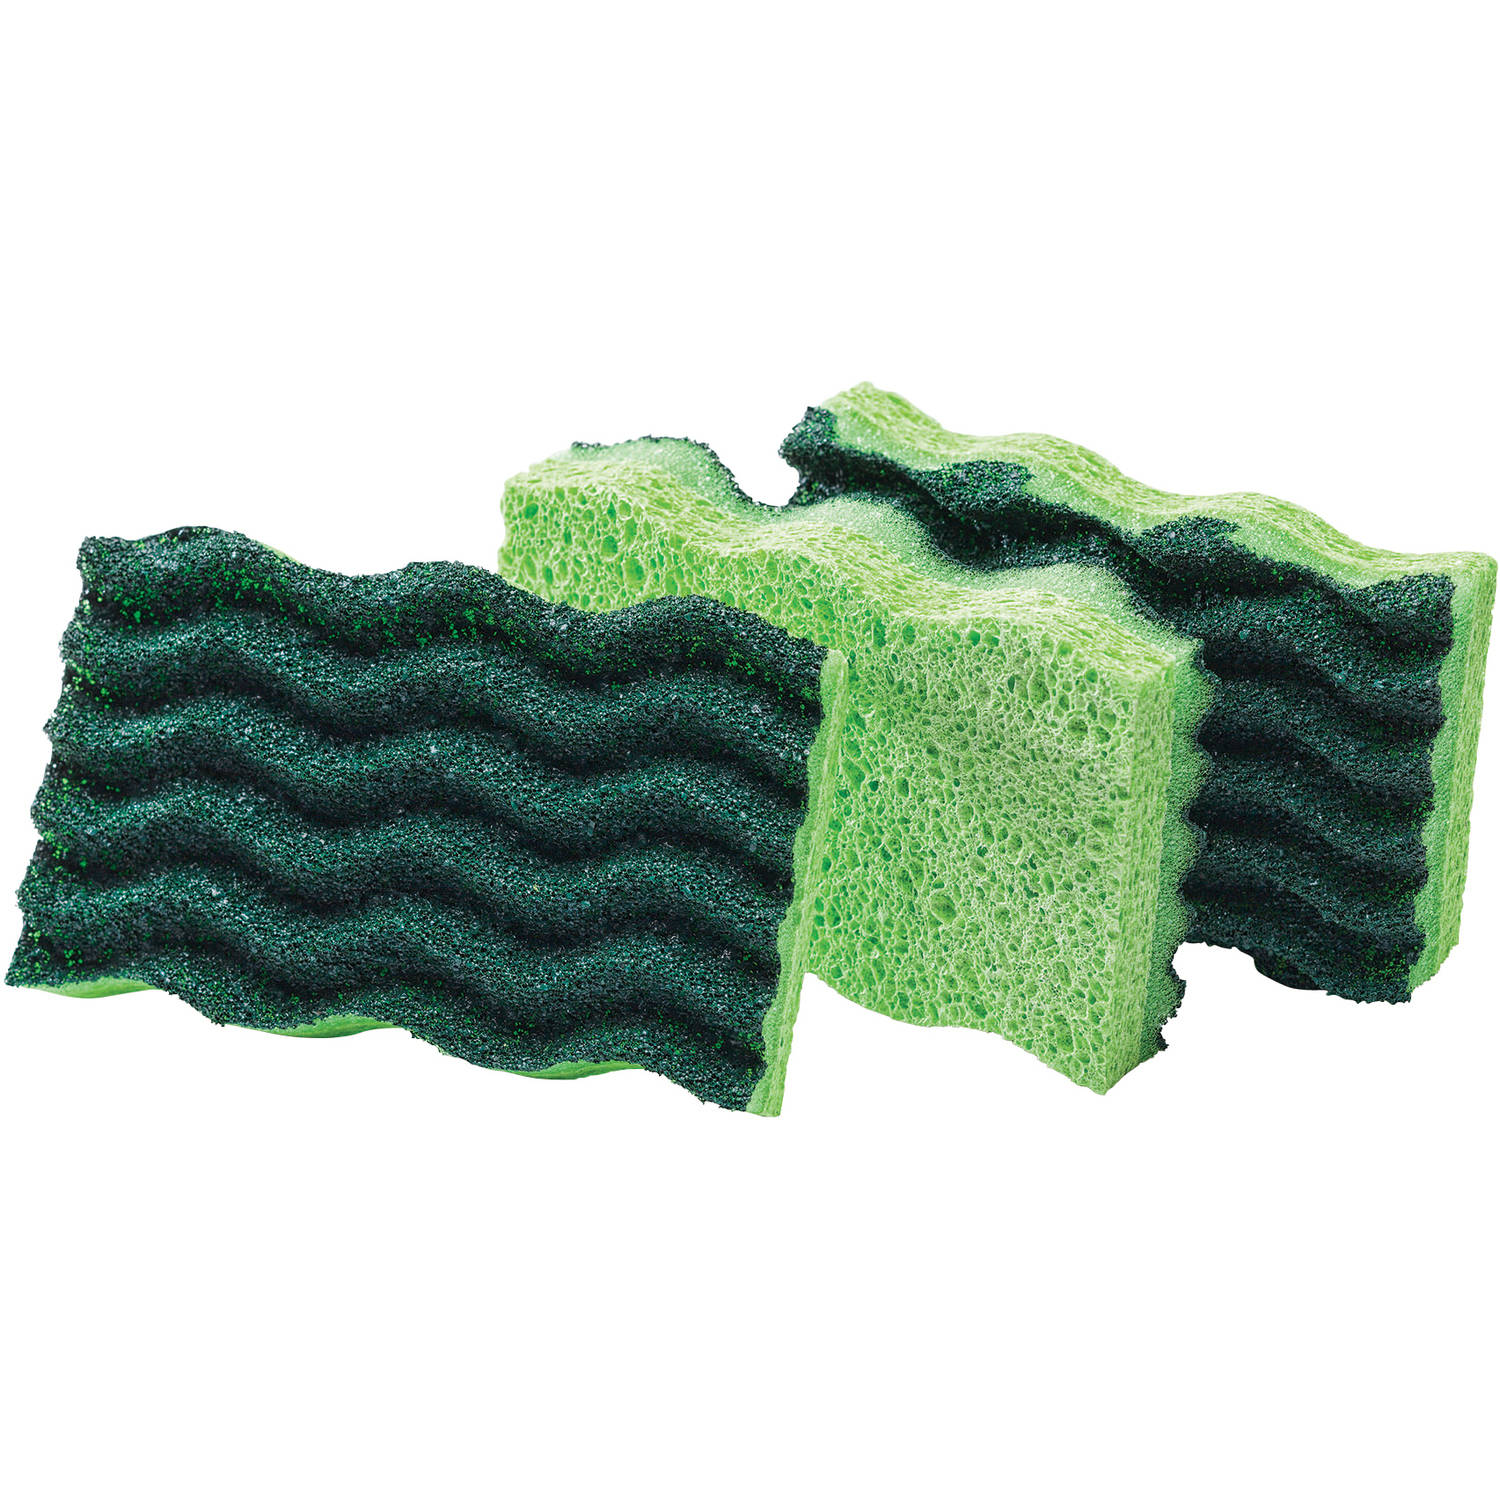 Libman Heavy-Duty Sponges, Green, 3 count